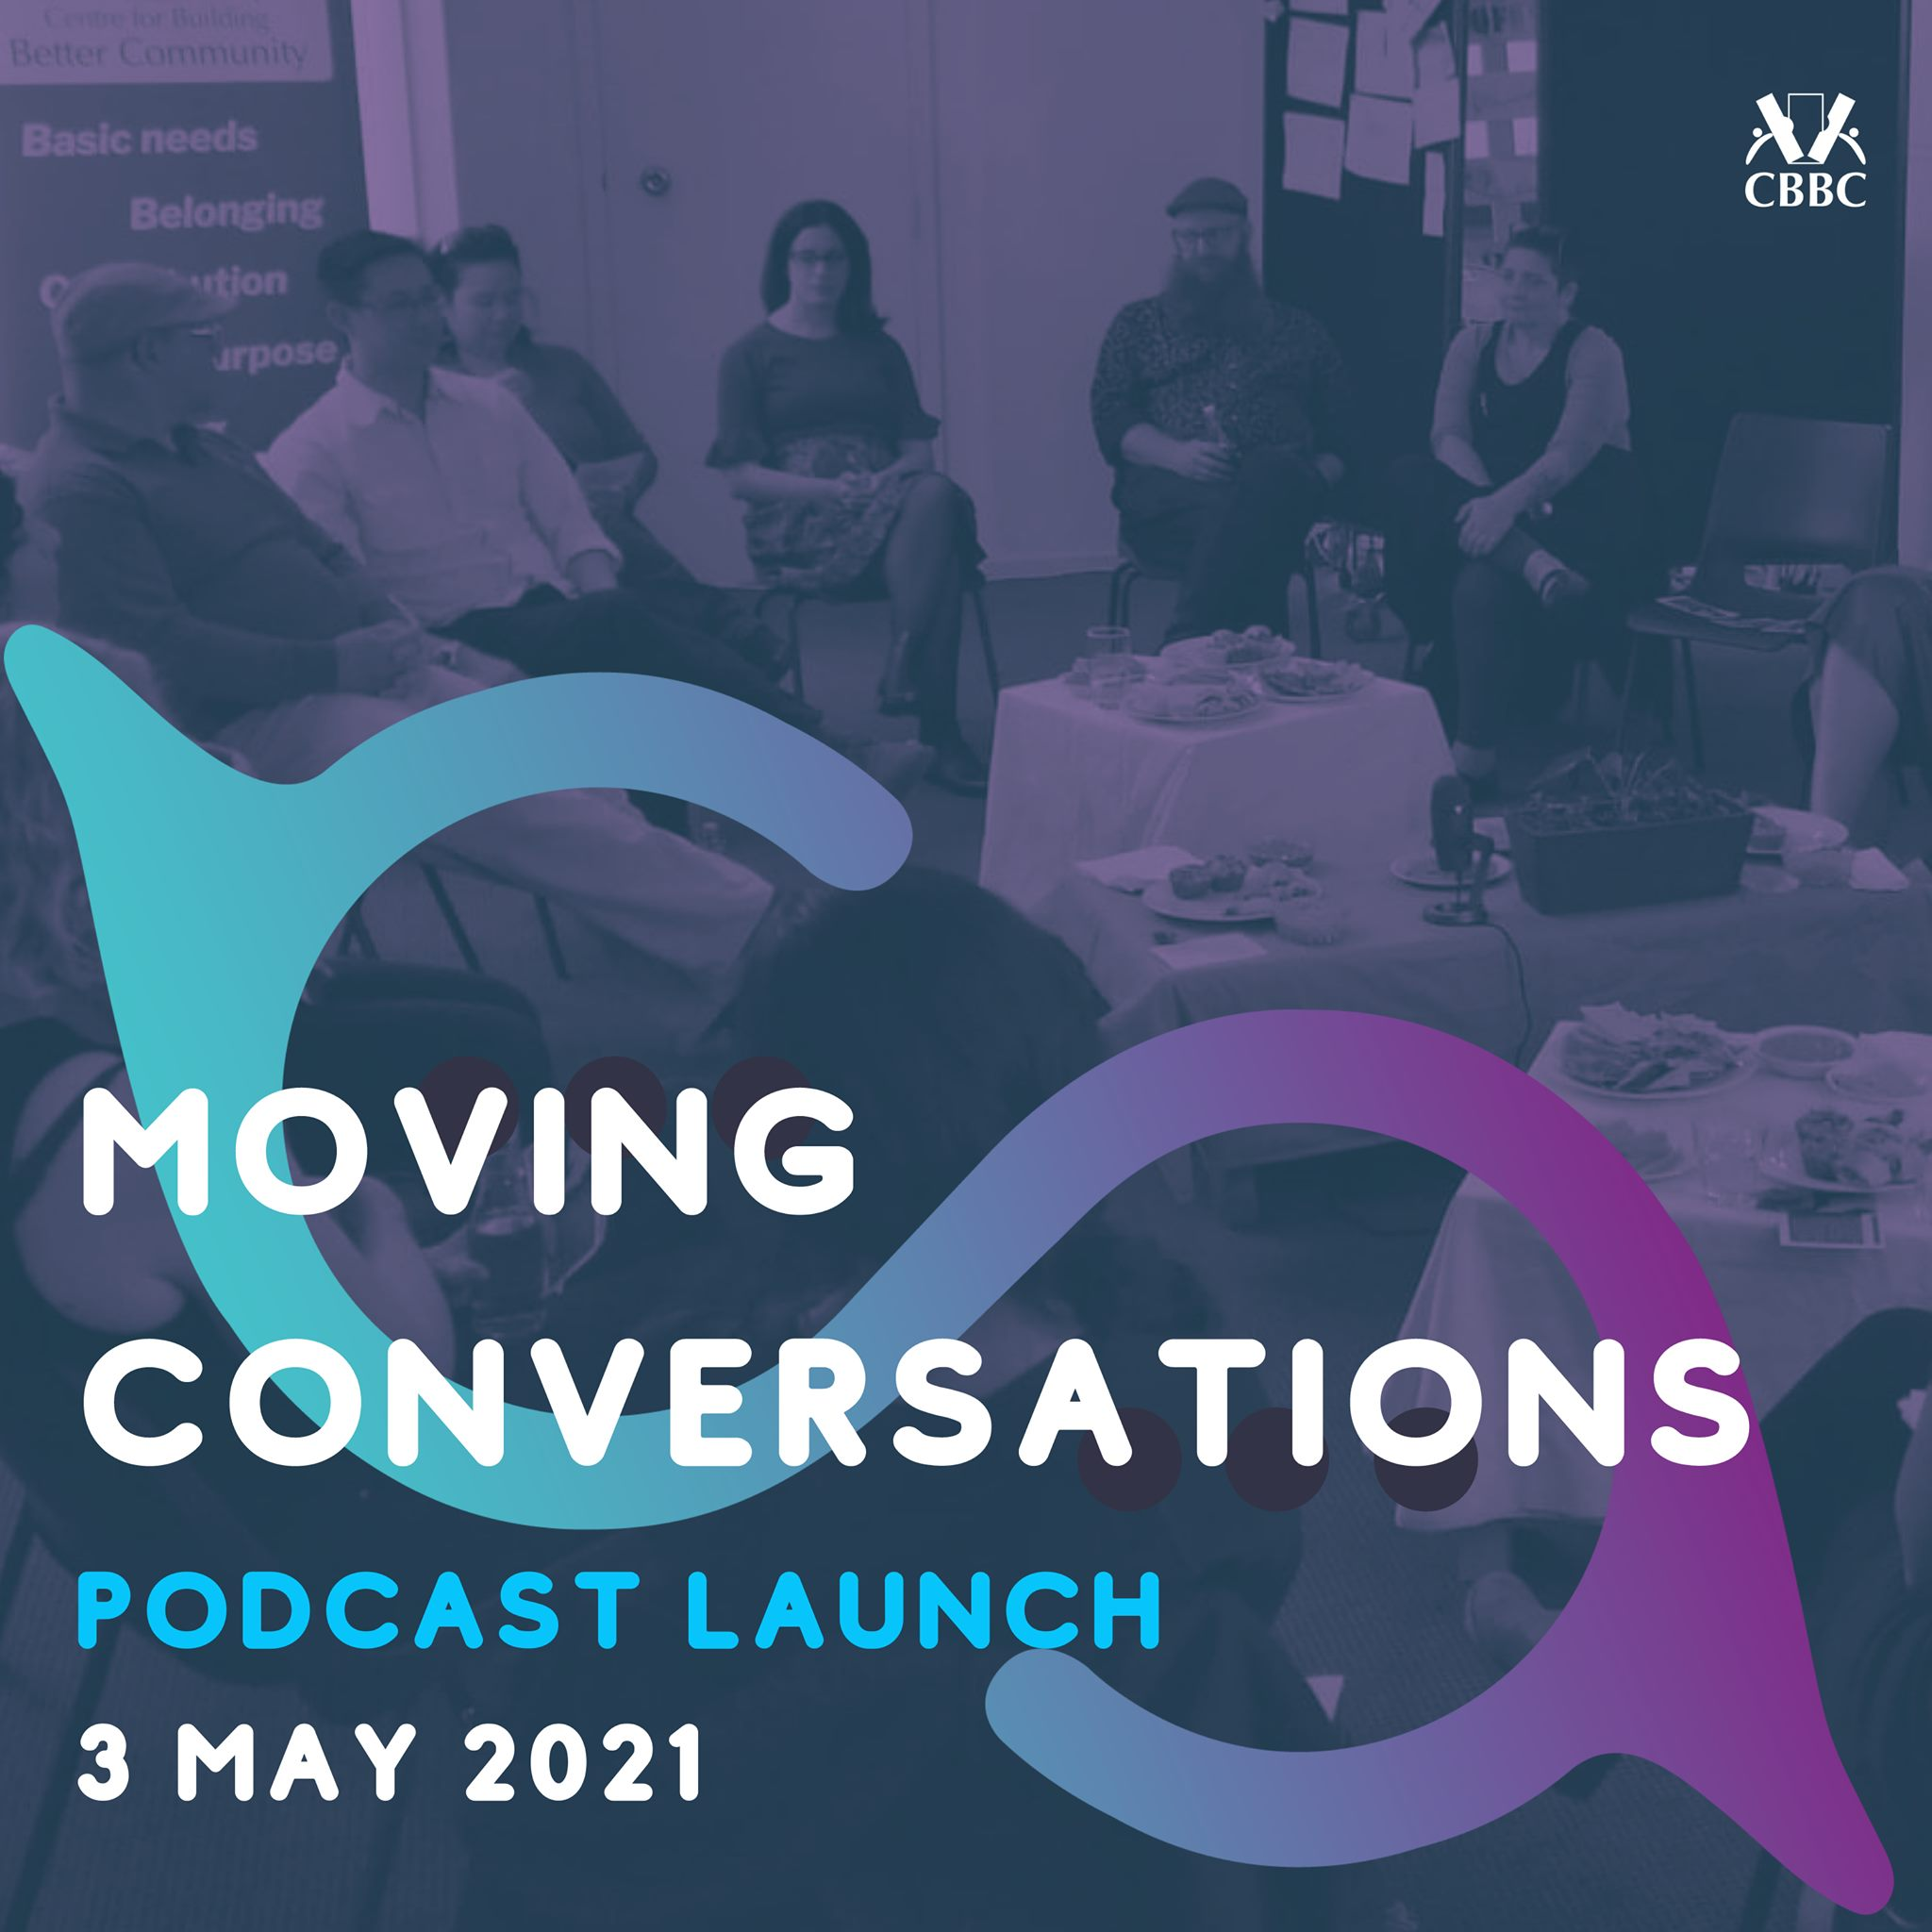 A group of people seated around low tables are deep in conversation. Text over the image reads Moving Conversations Podcast Launch 3 May 2021